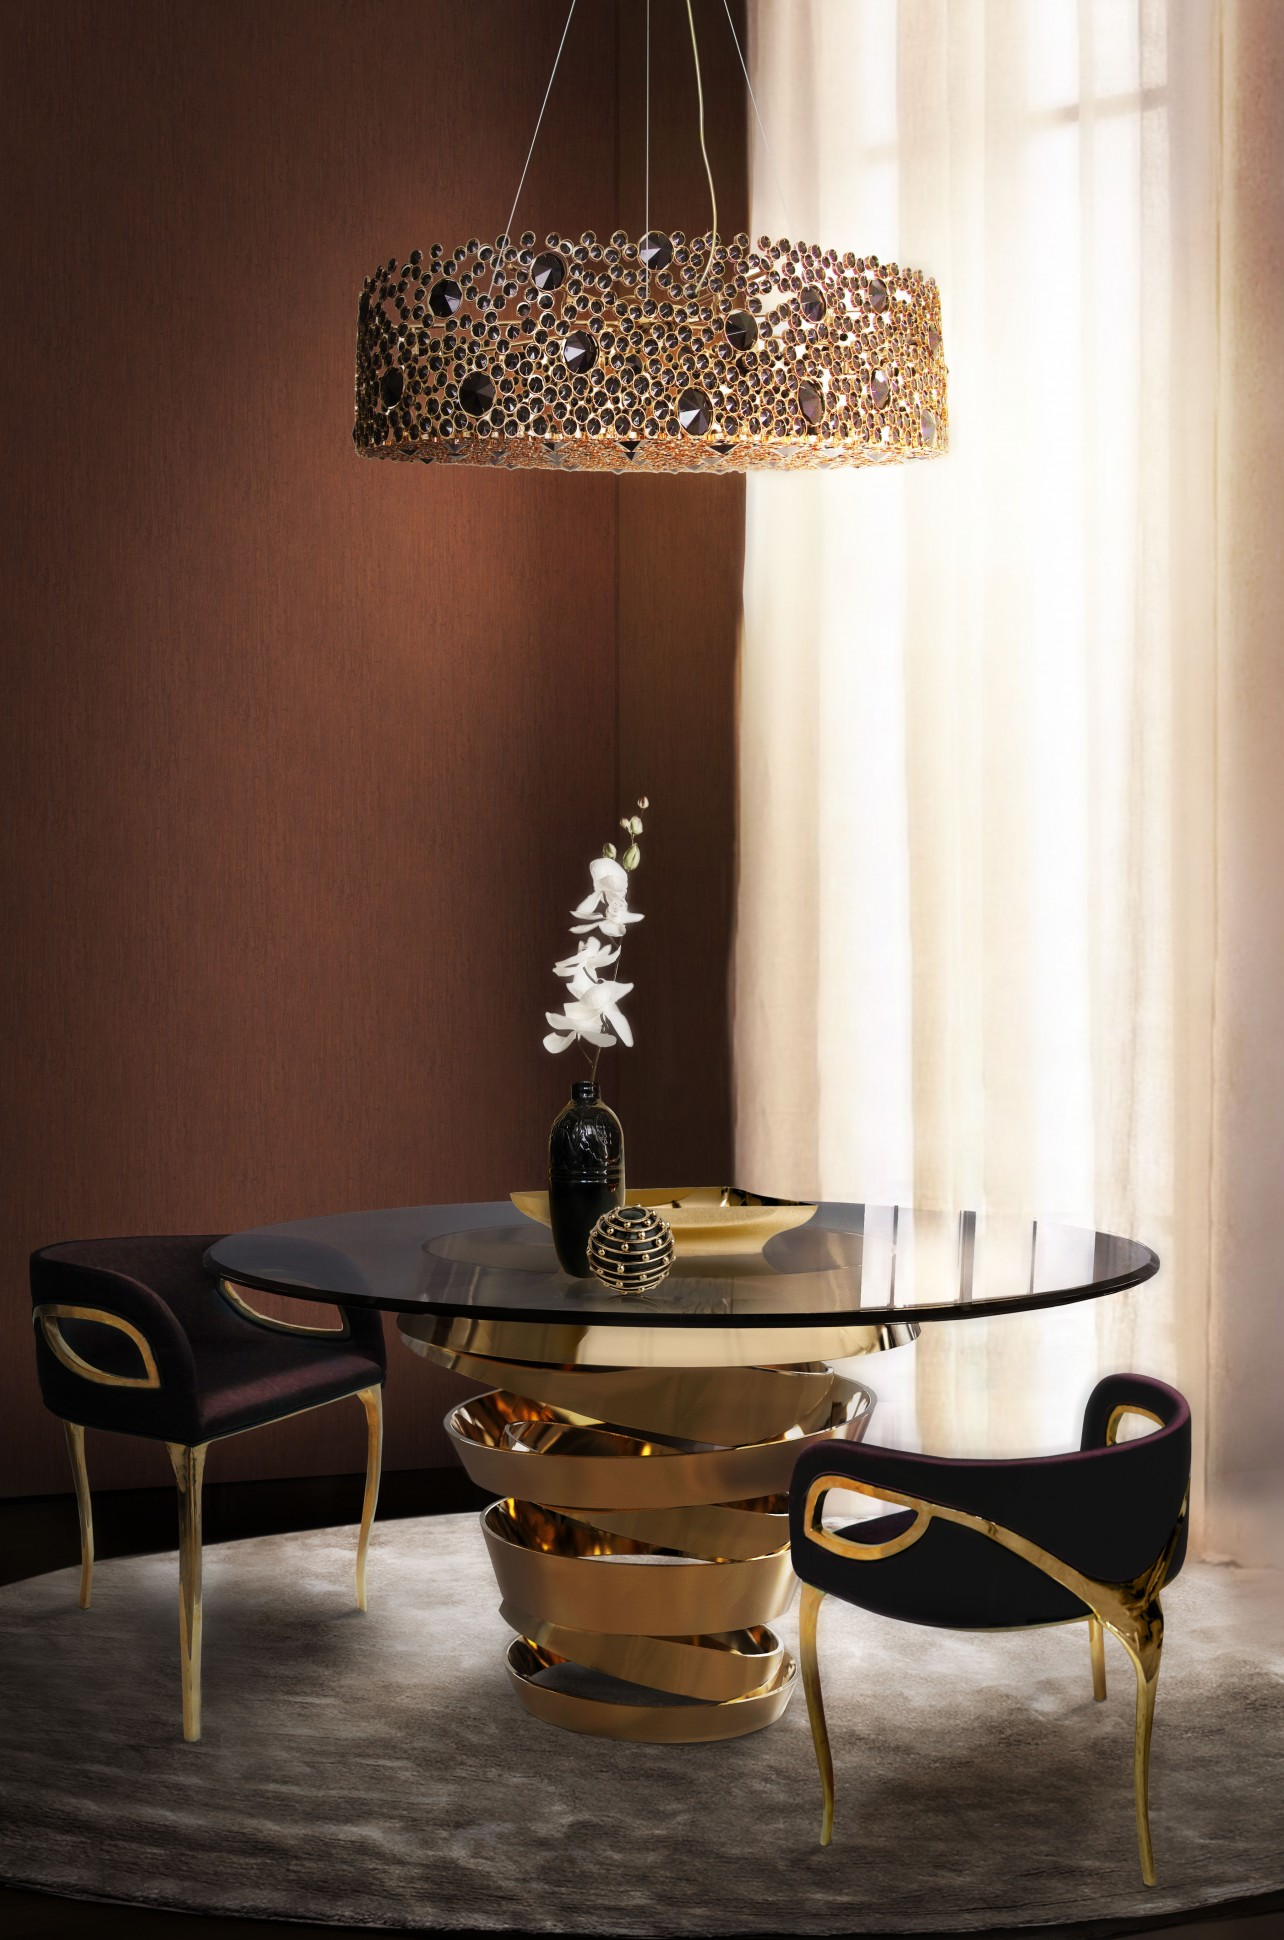 The Best Fall Decor to improve your Dining Room Designs fall decor The Best Fall Decor to improve your Dining Room Designs Top 10 Black Dining Rooms that will Delight You6